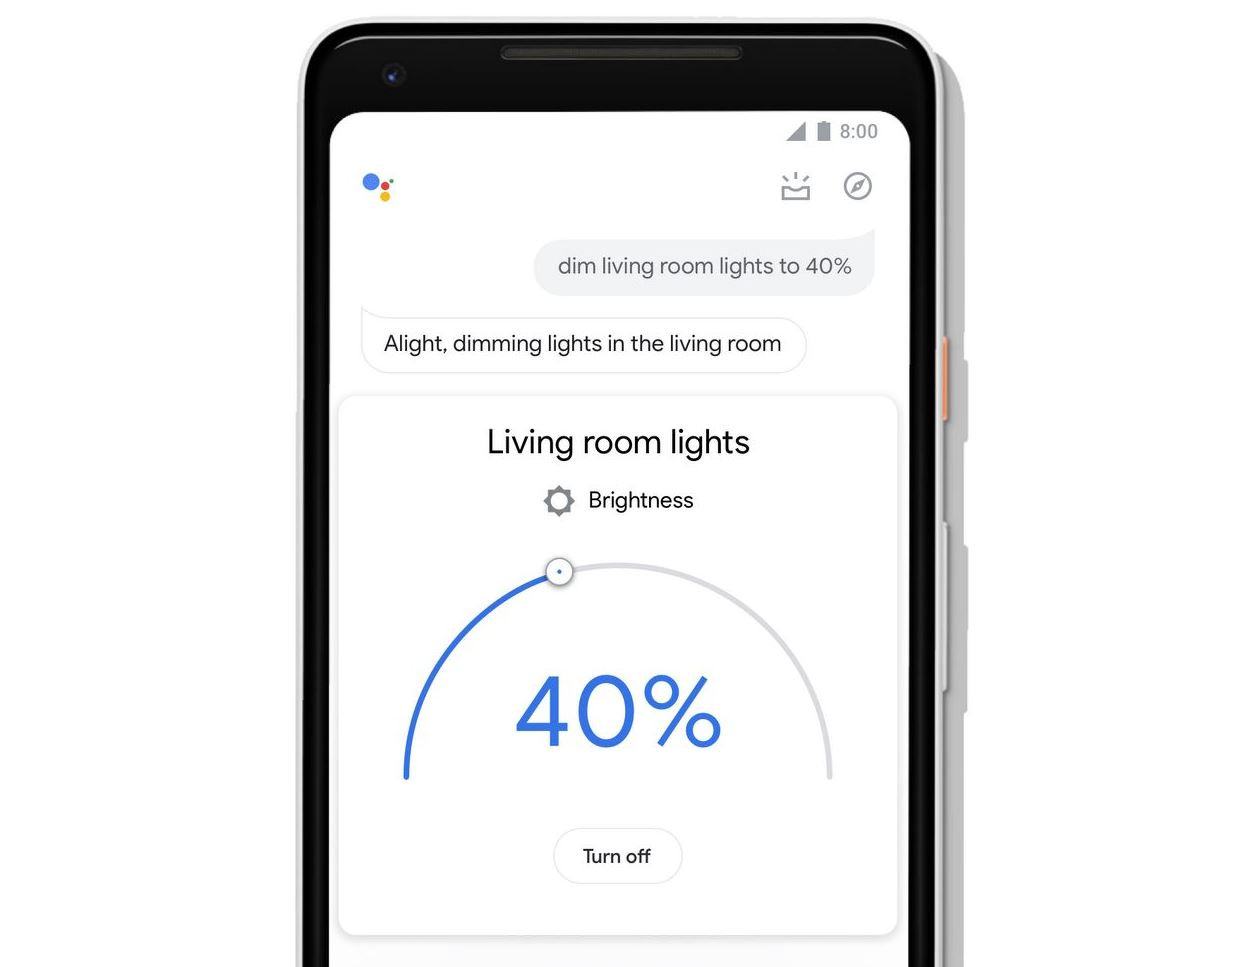 Google Assistant Design Update 2018